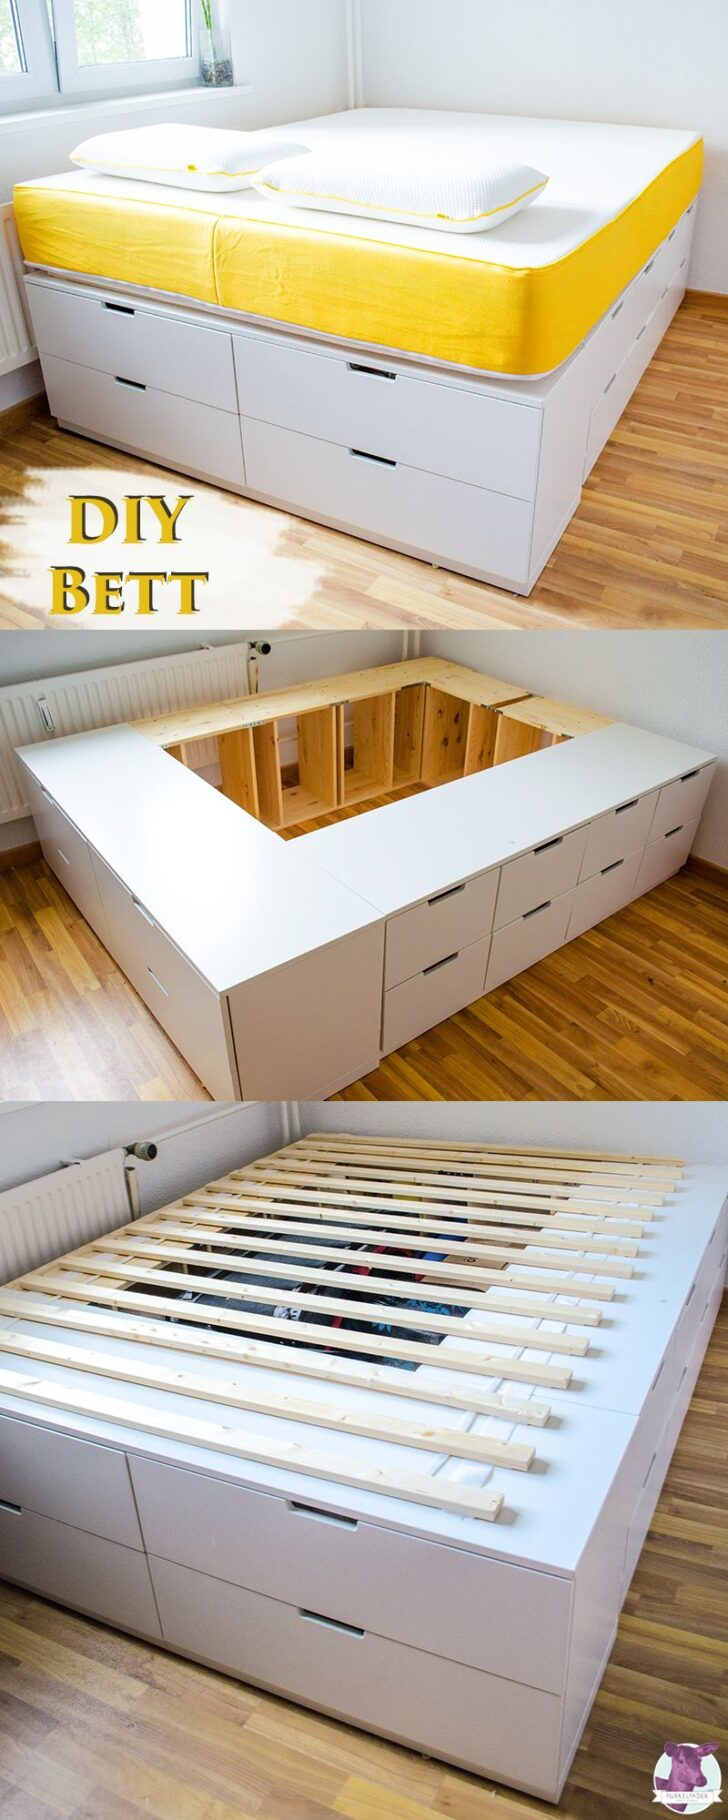 Medium Size of Diy Ikea Hack Plattform Bett Selber Bauen Aus Kommoden Massiv 180x200 Podest Günstiges Mit Stauraum Hunde Bopita Ruf Betten Preise 140x200 Weiß Funktions Wohnzimmer Stauraum Bett 120x200 Ikea